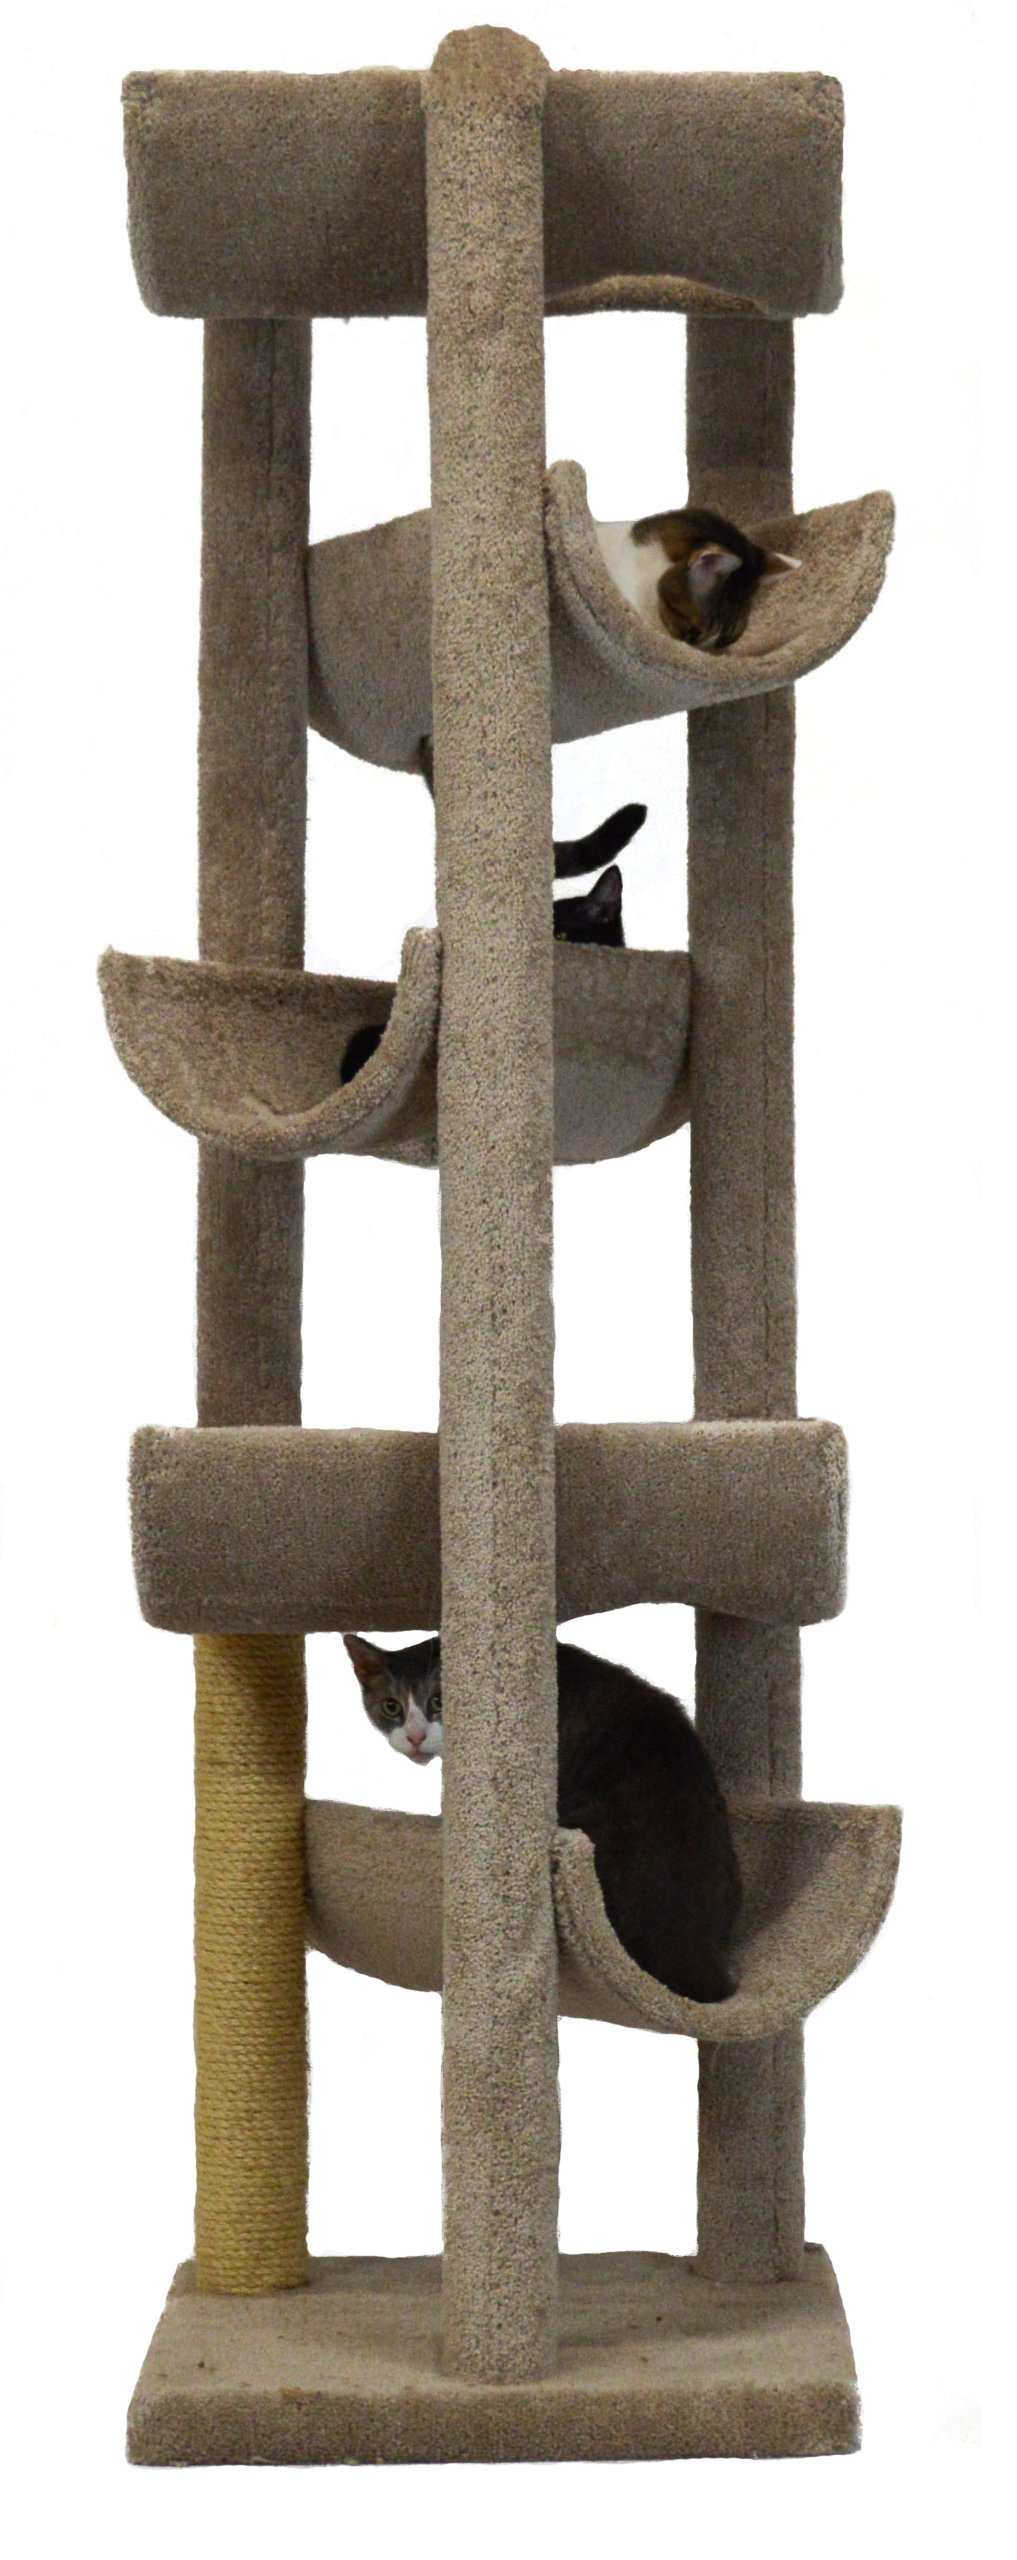 Molly and Friends Alleyway Cat Furniture, X-Large, Beige